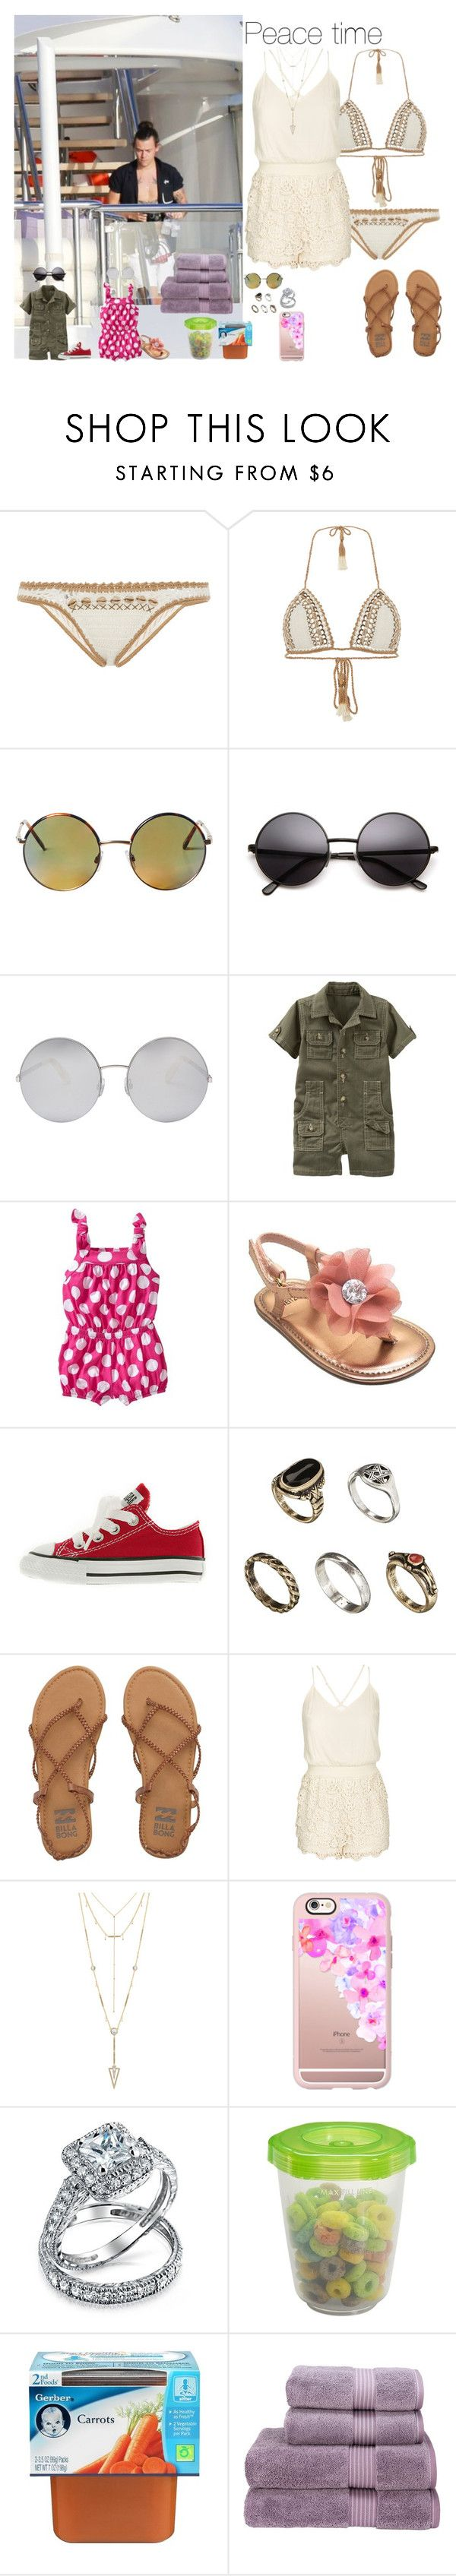 """Peace time"" by wiki0622 ❤ liked on Polyvore featuring SHE MADE ME, Monki, Victoria Beckham, Gap, Old Navy, Stuart Weitzman, Converse, ASOS, Billabong and City Chic"